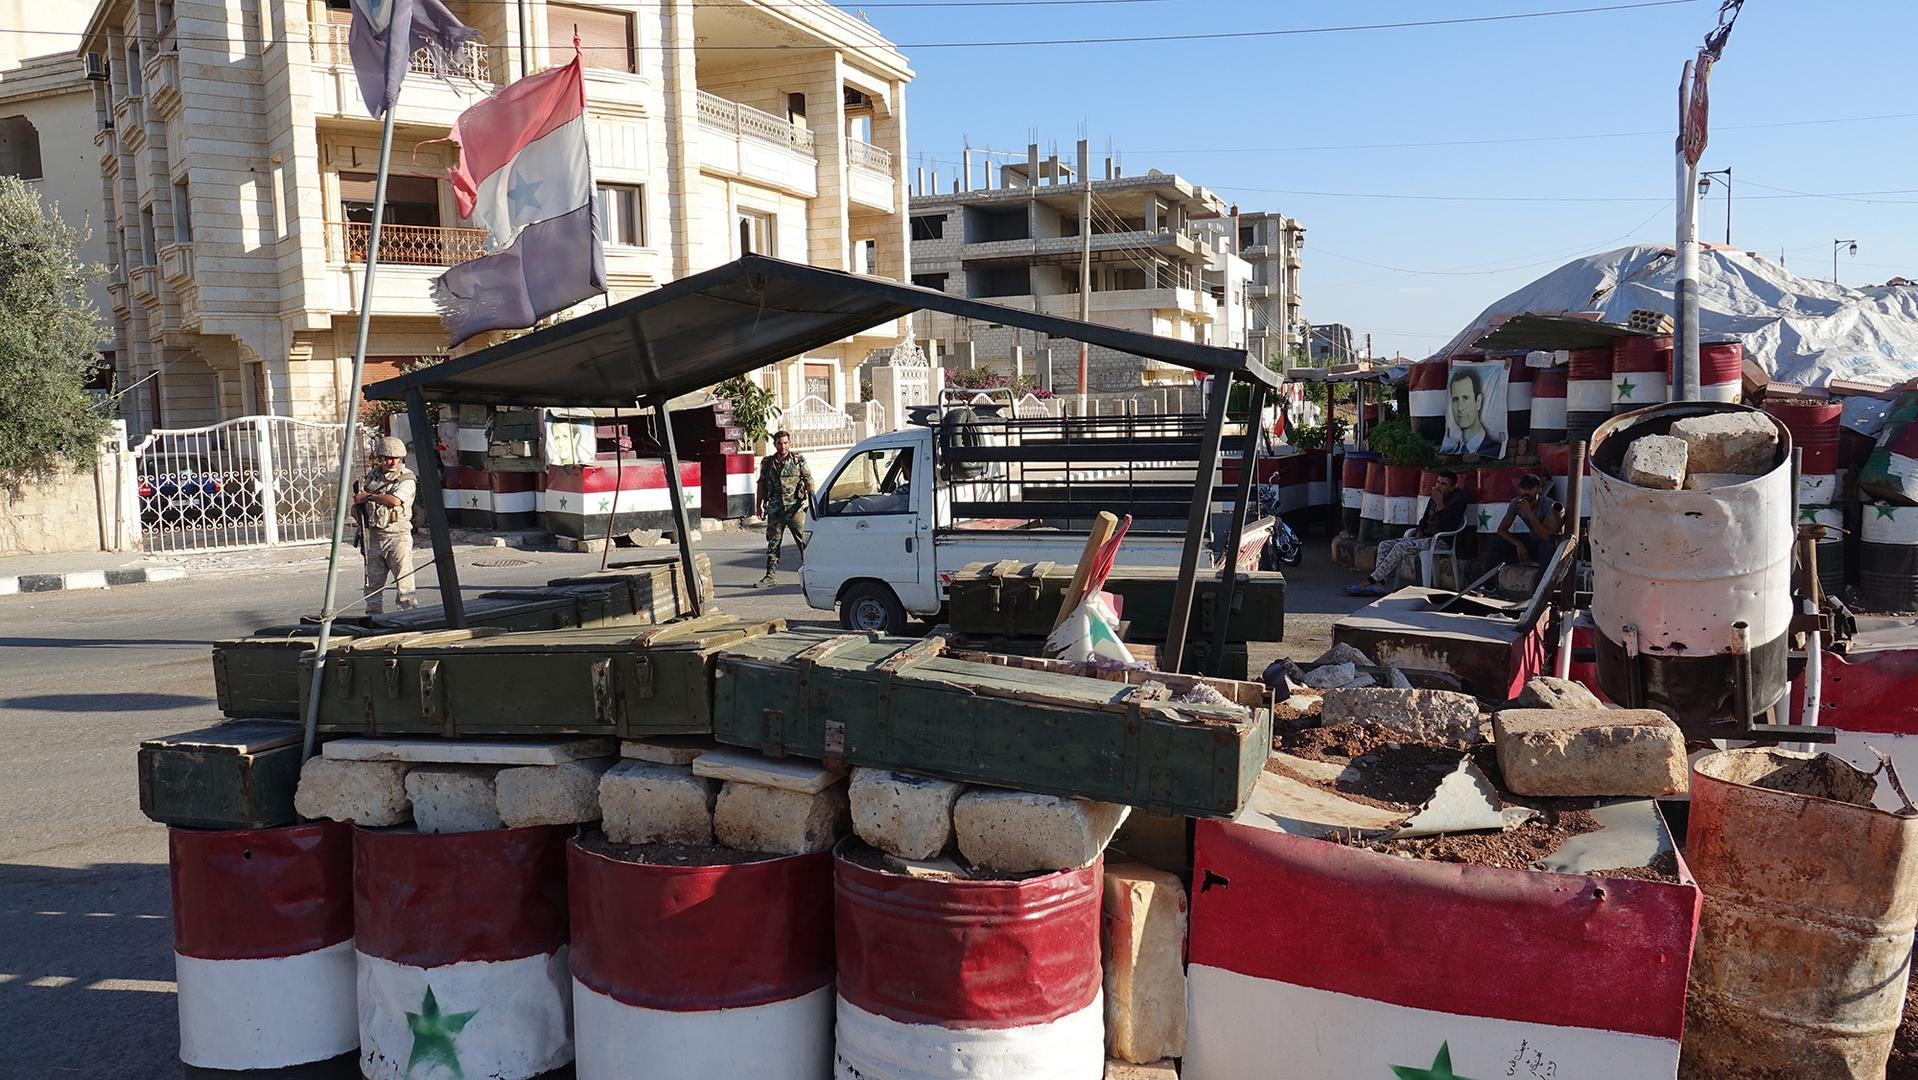 A Syrian regime's checkpoint in Daraa 2018 (Human Rights Watch)